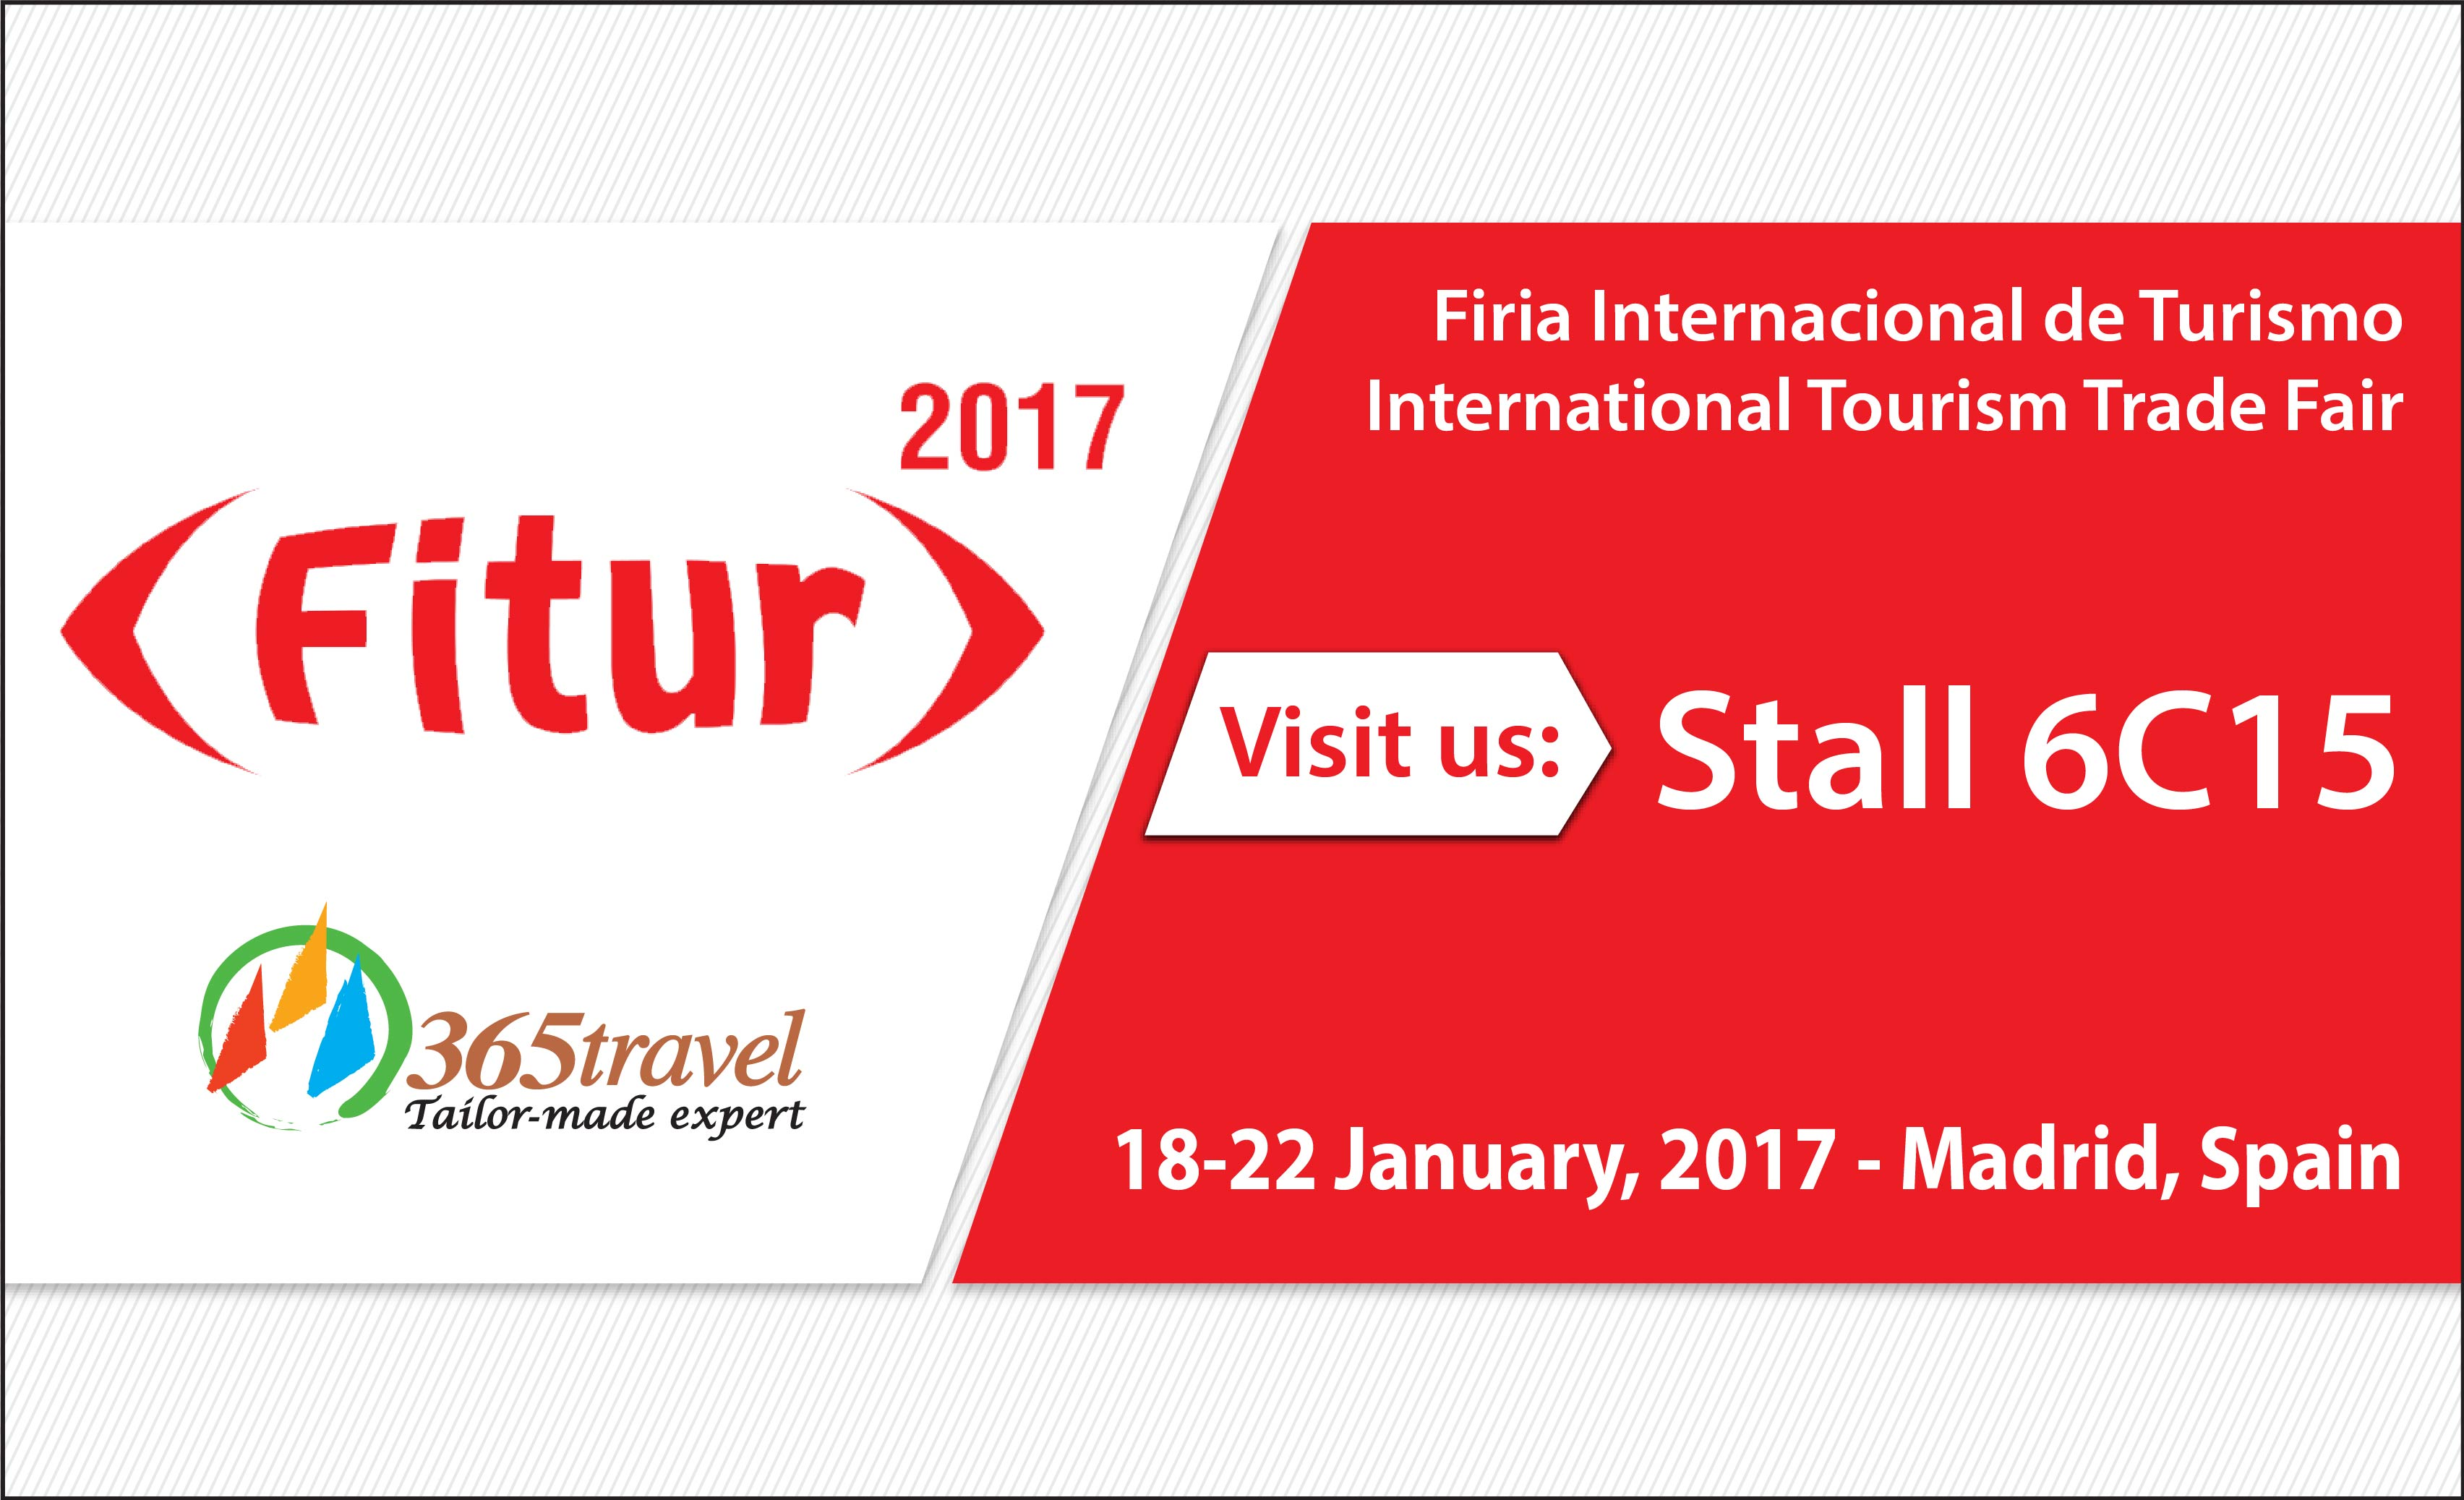 Come and visit 365 Travel at FITUR 2017